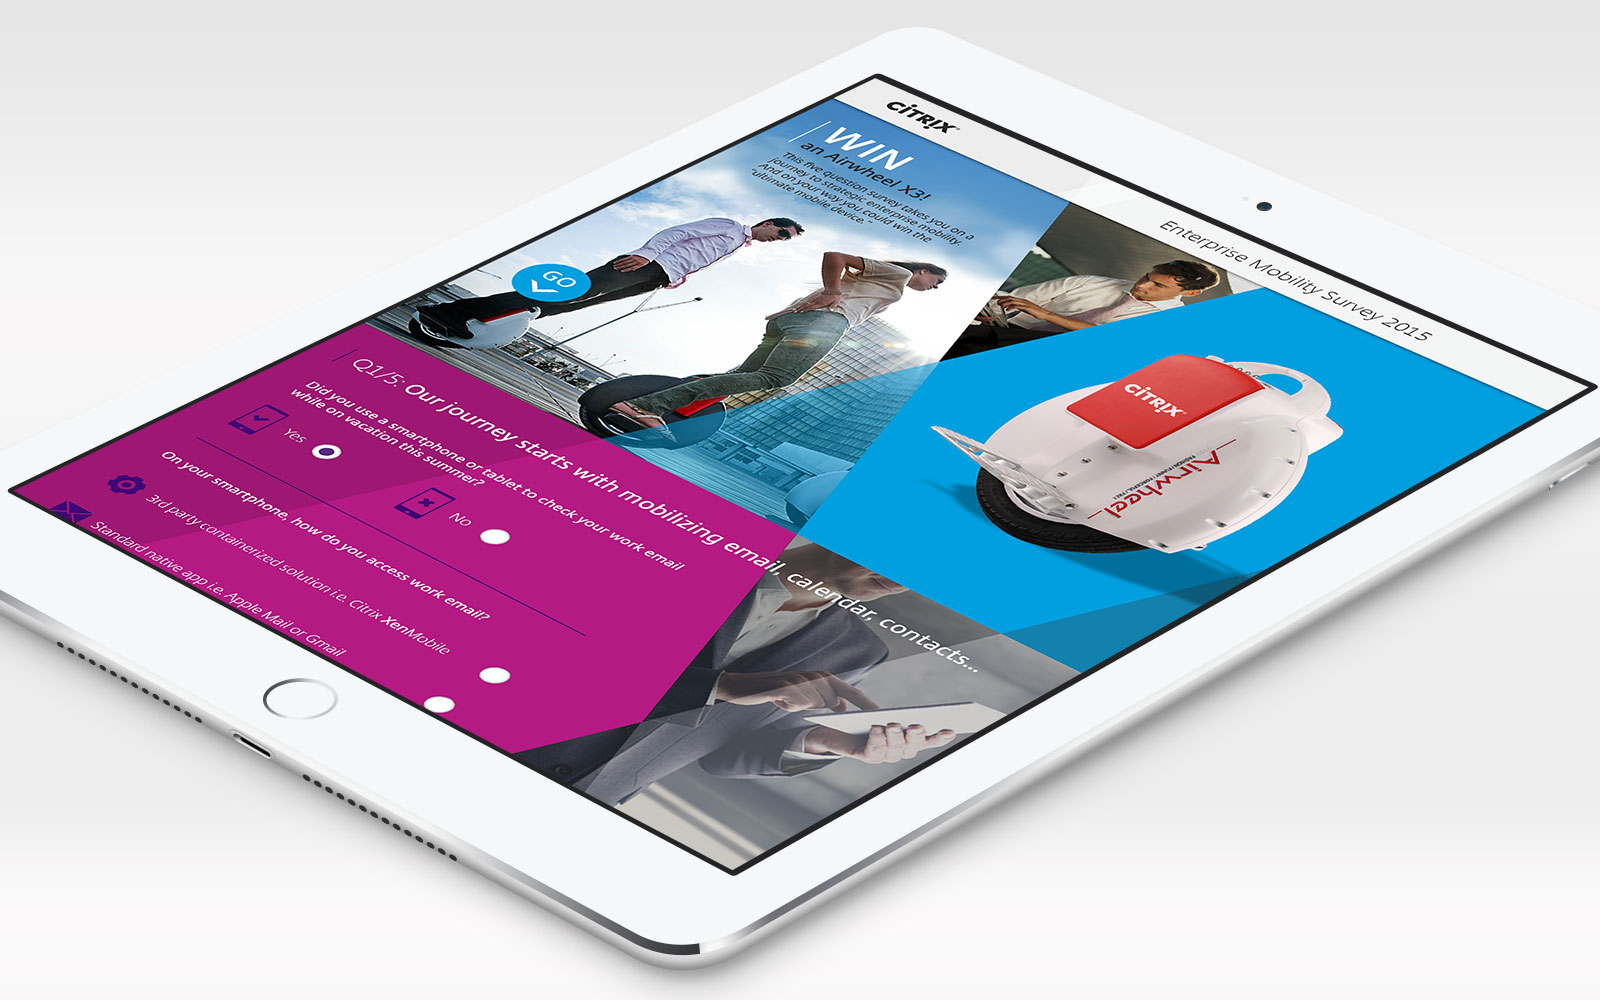 White iPad displaying Citrix digital touchscreen sales enablement tool